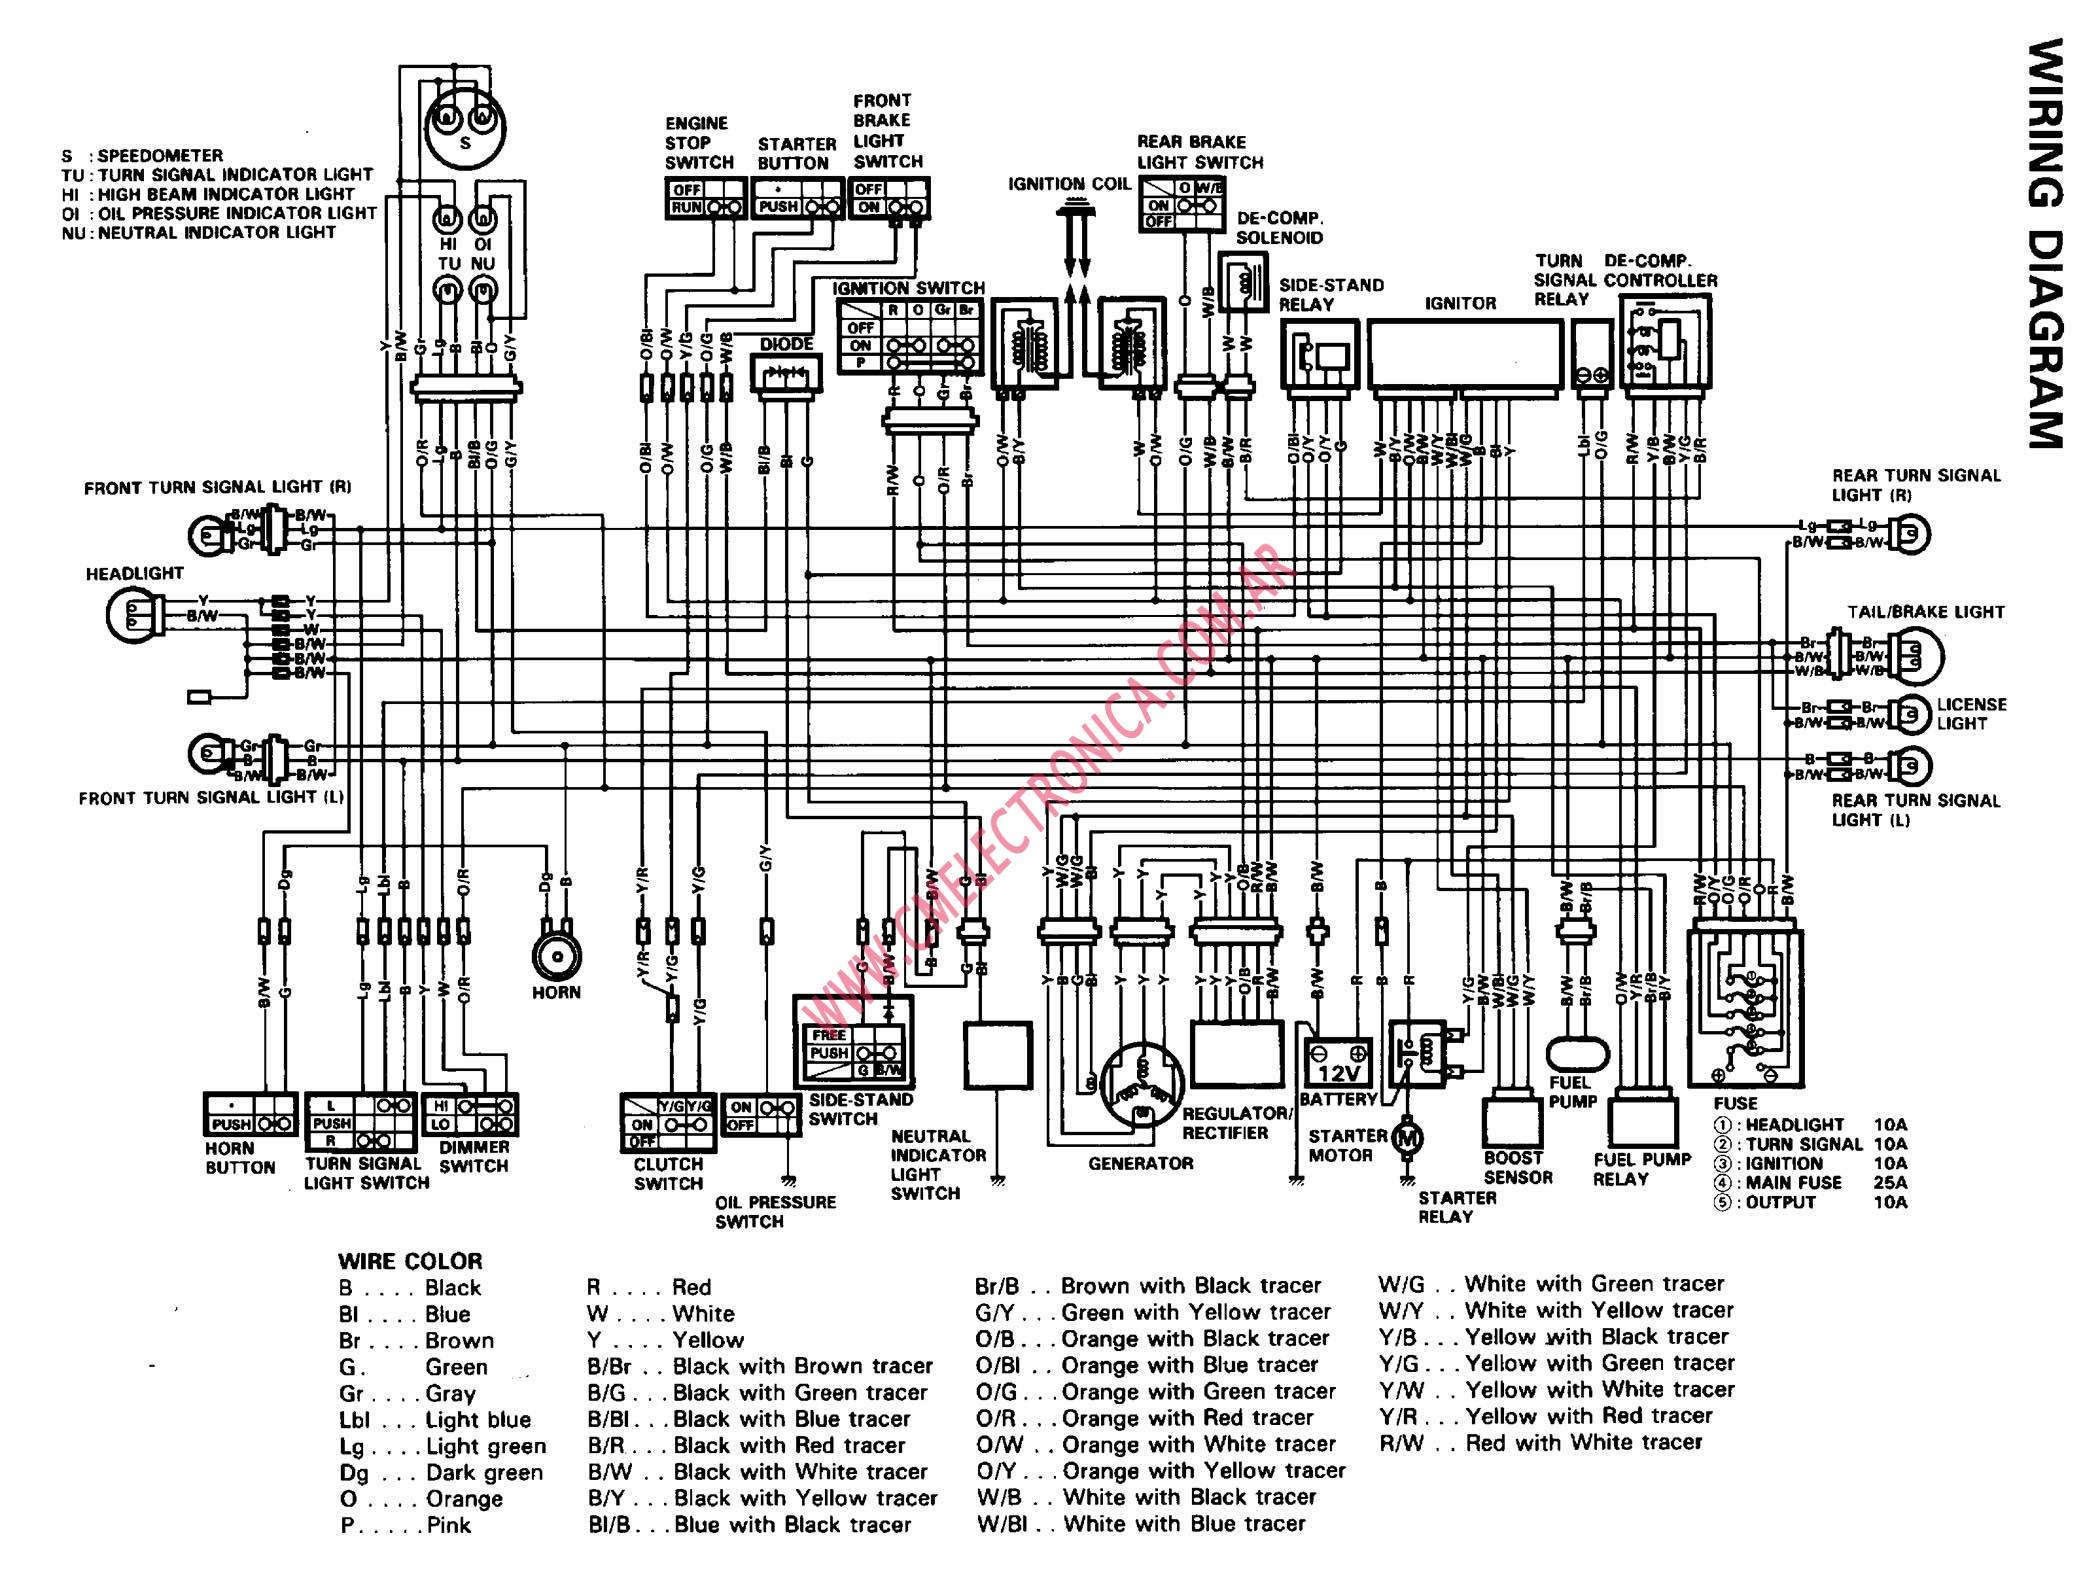 [DIAGRAM] Wiring Diagram For A Kawasaki Bayou 220 FULL